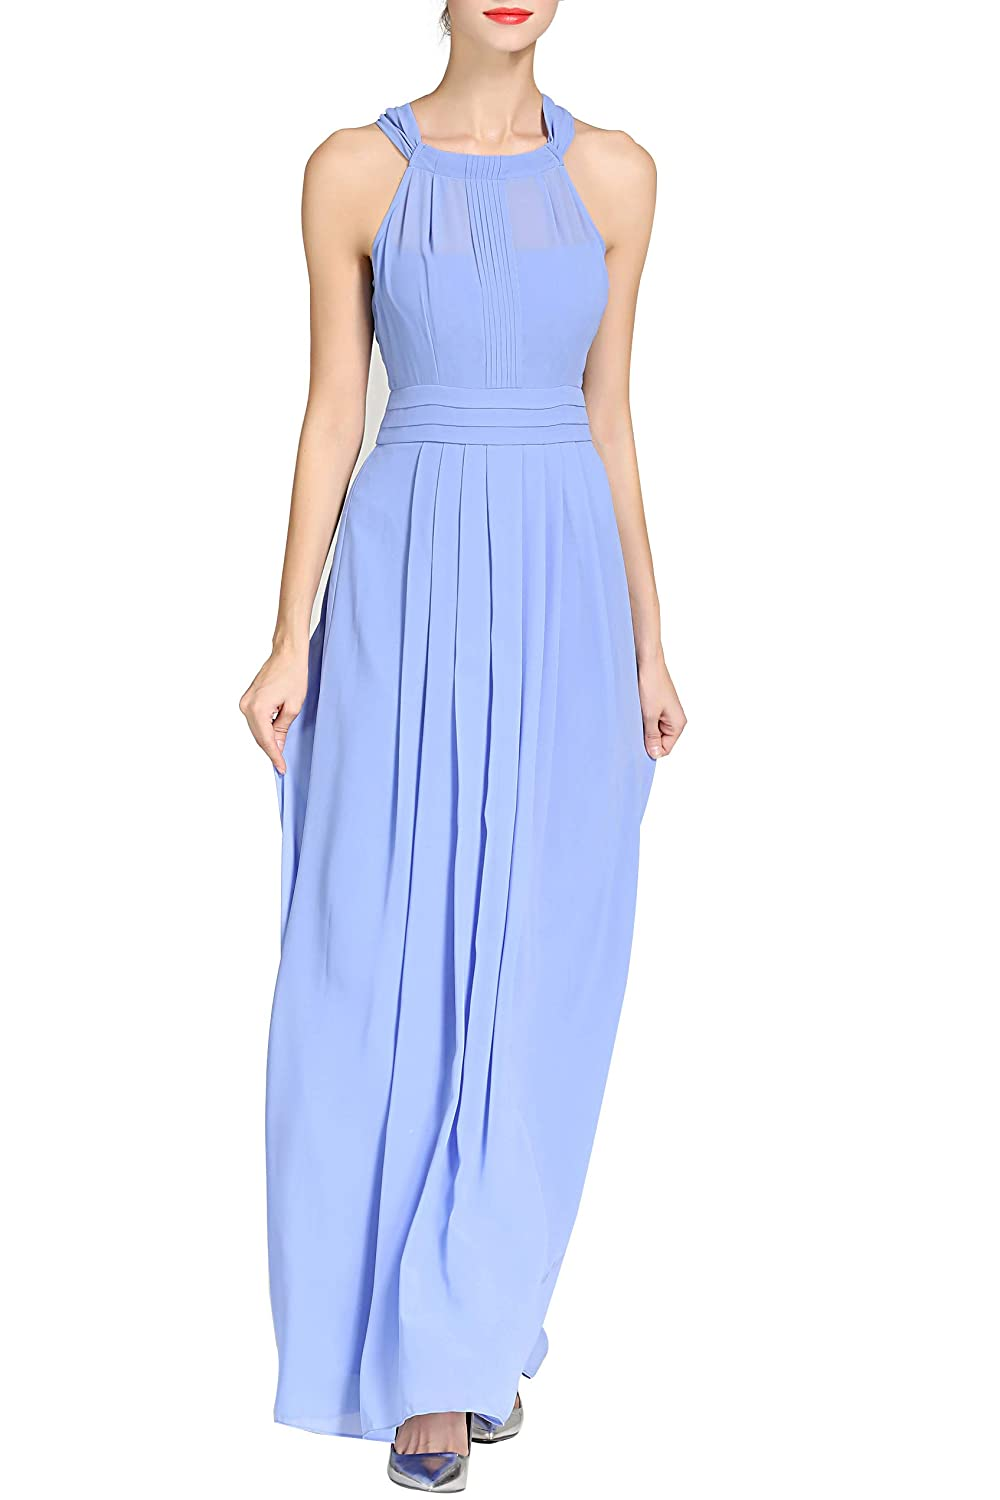 Little Smily Womens A-line Halter Top Chiffon Pleated Maxi Bridesmaid Dress